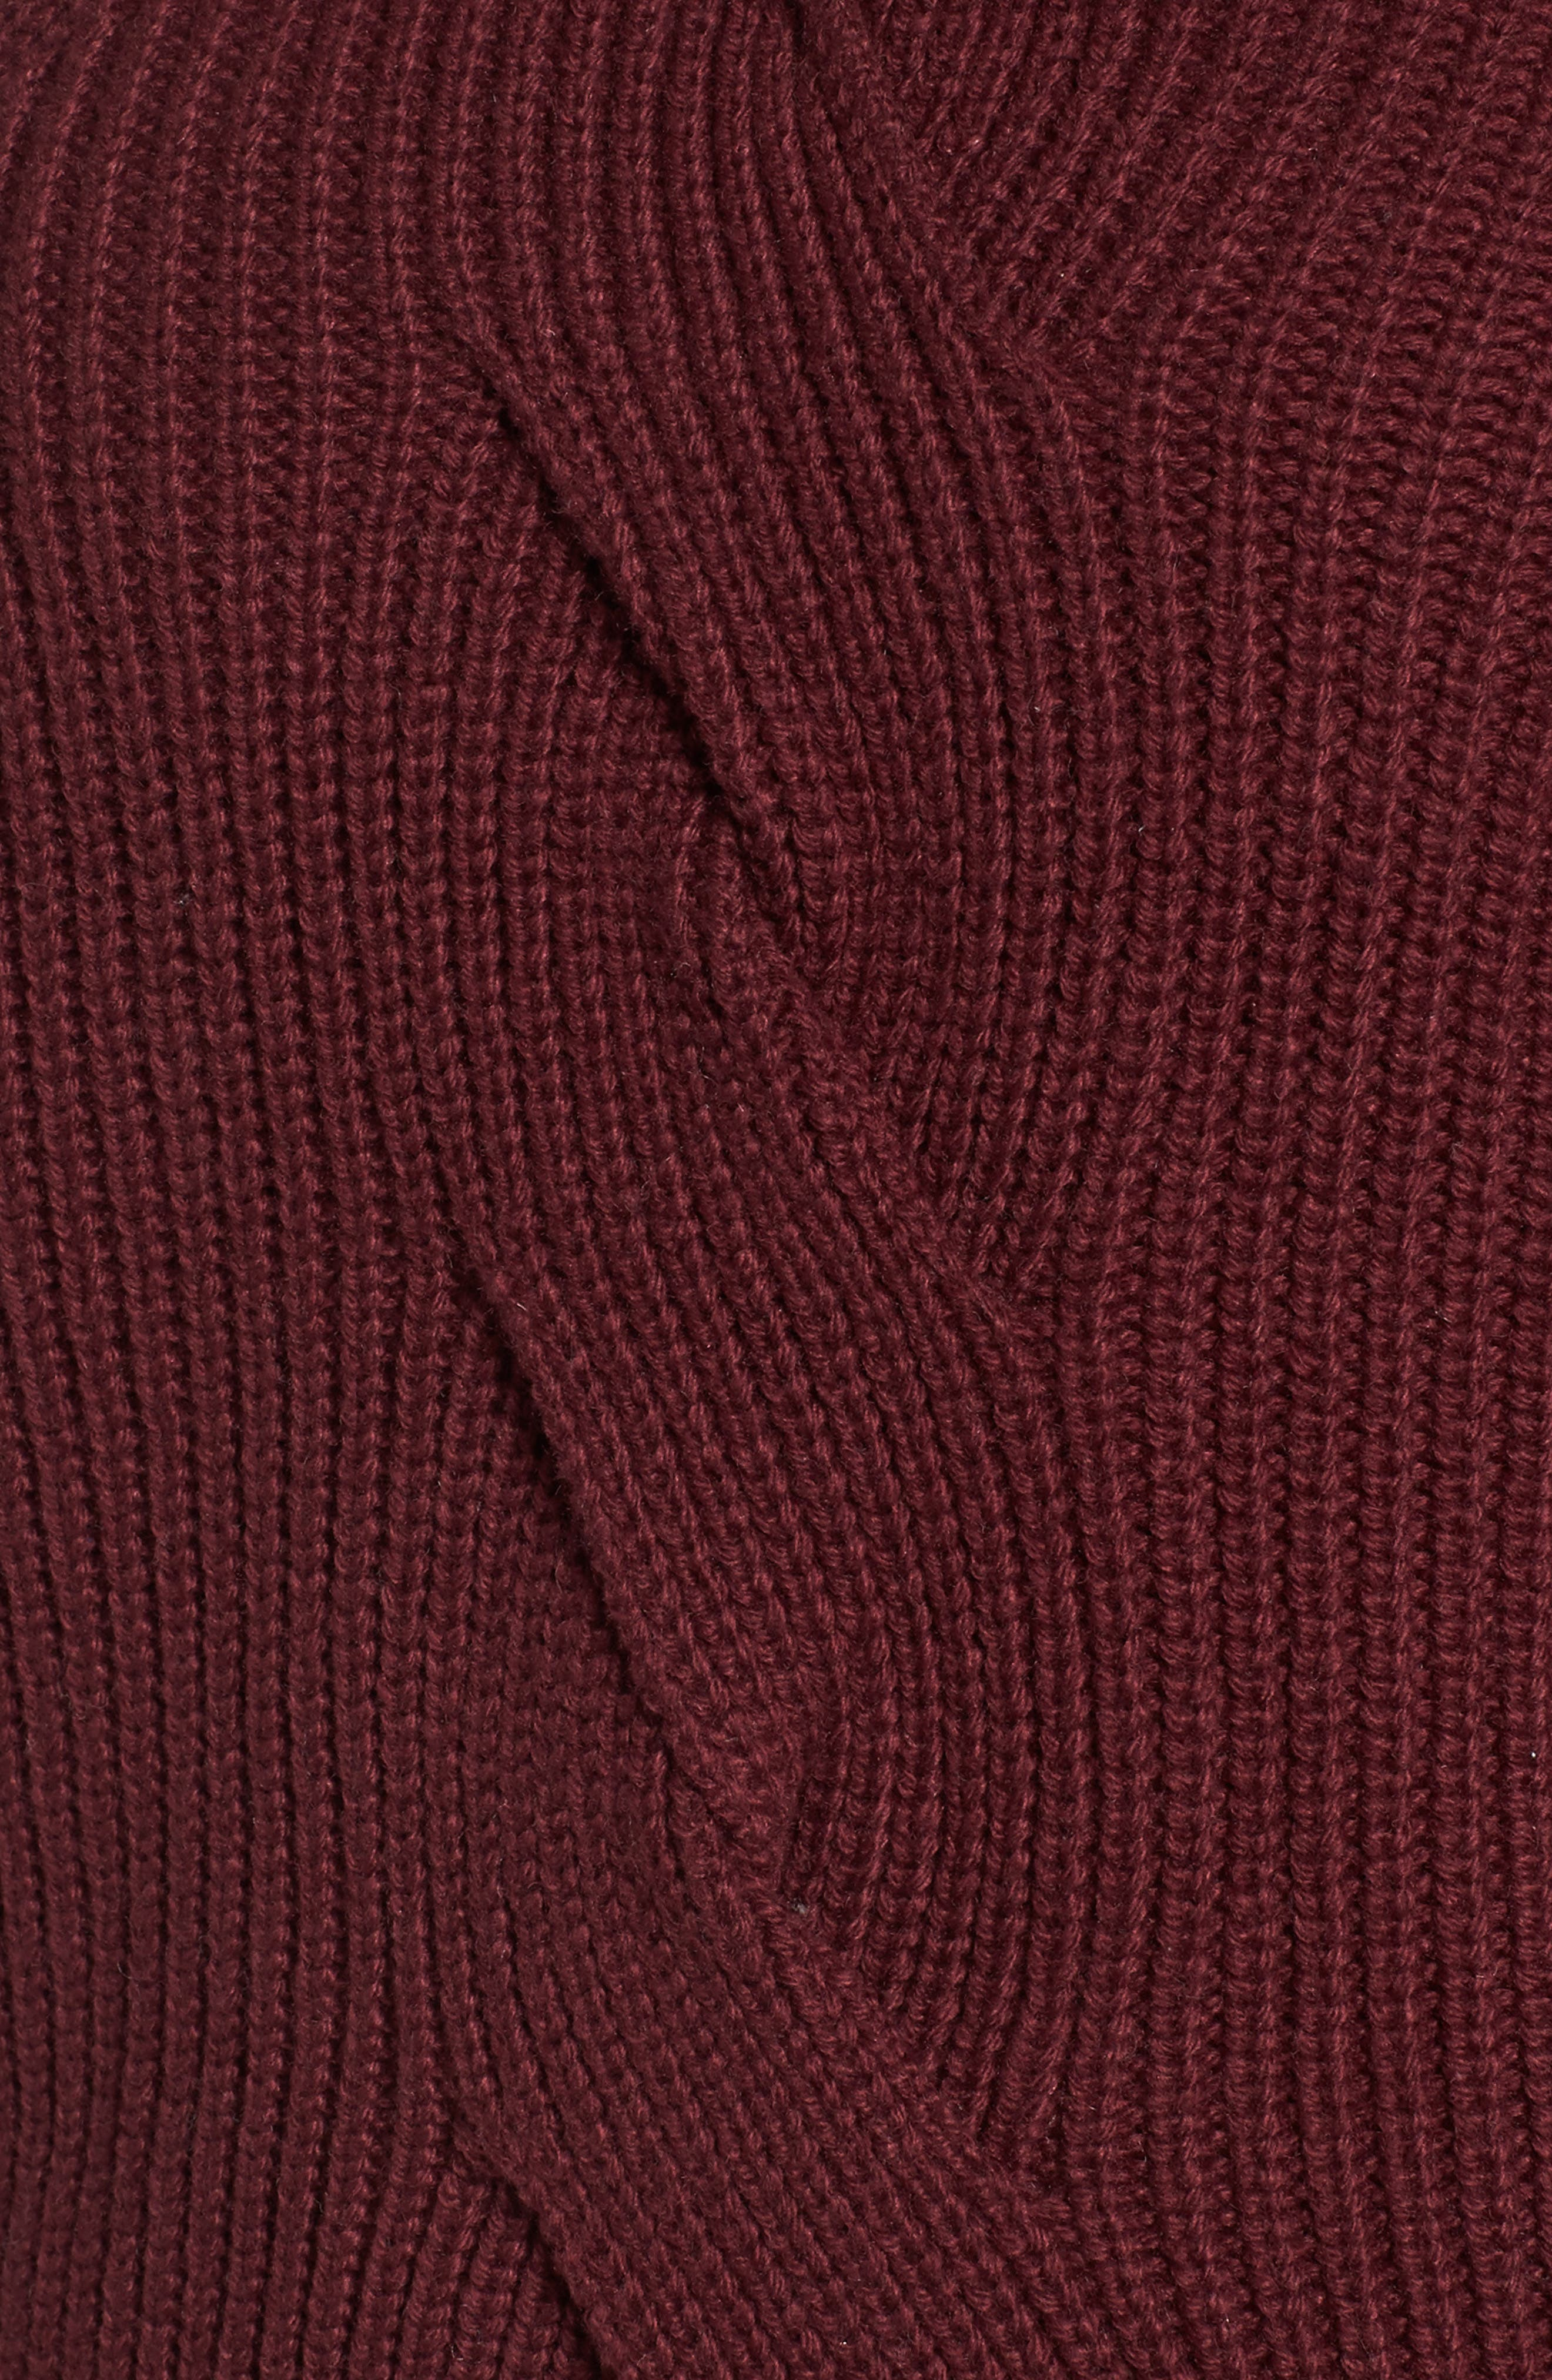 Cable Knit Puff Sleeve Sweater,                             Alternate thumbnail 5, color,                             Burgundy Royale